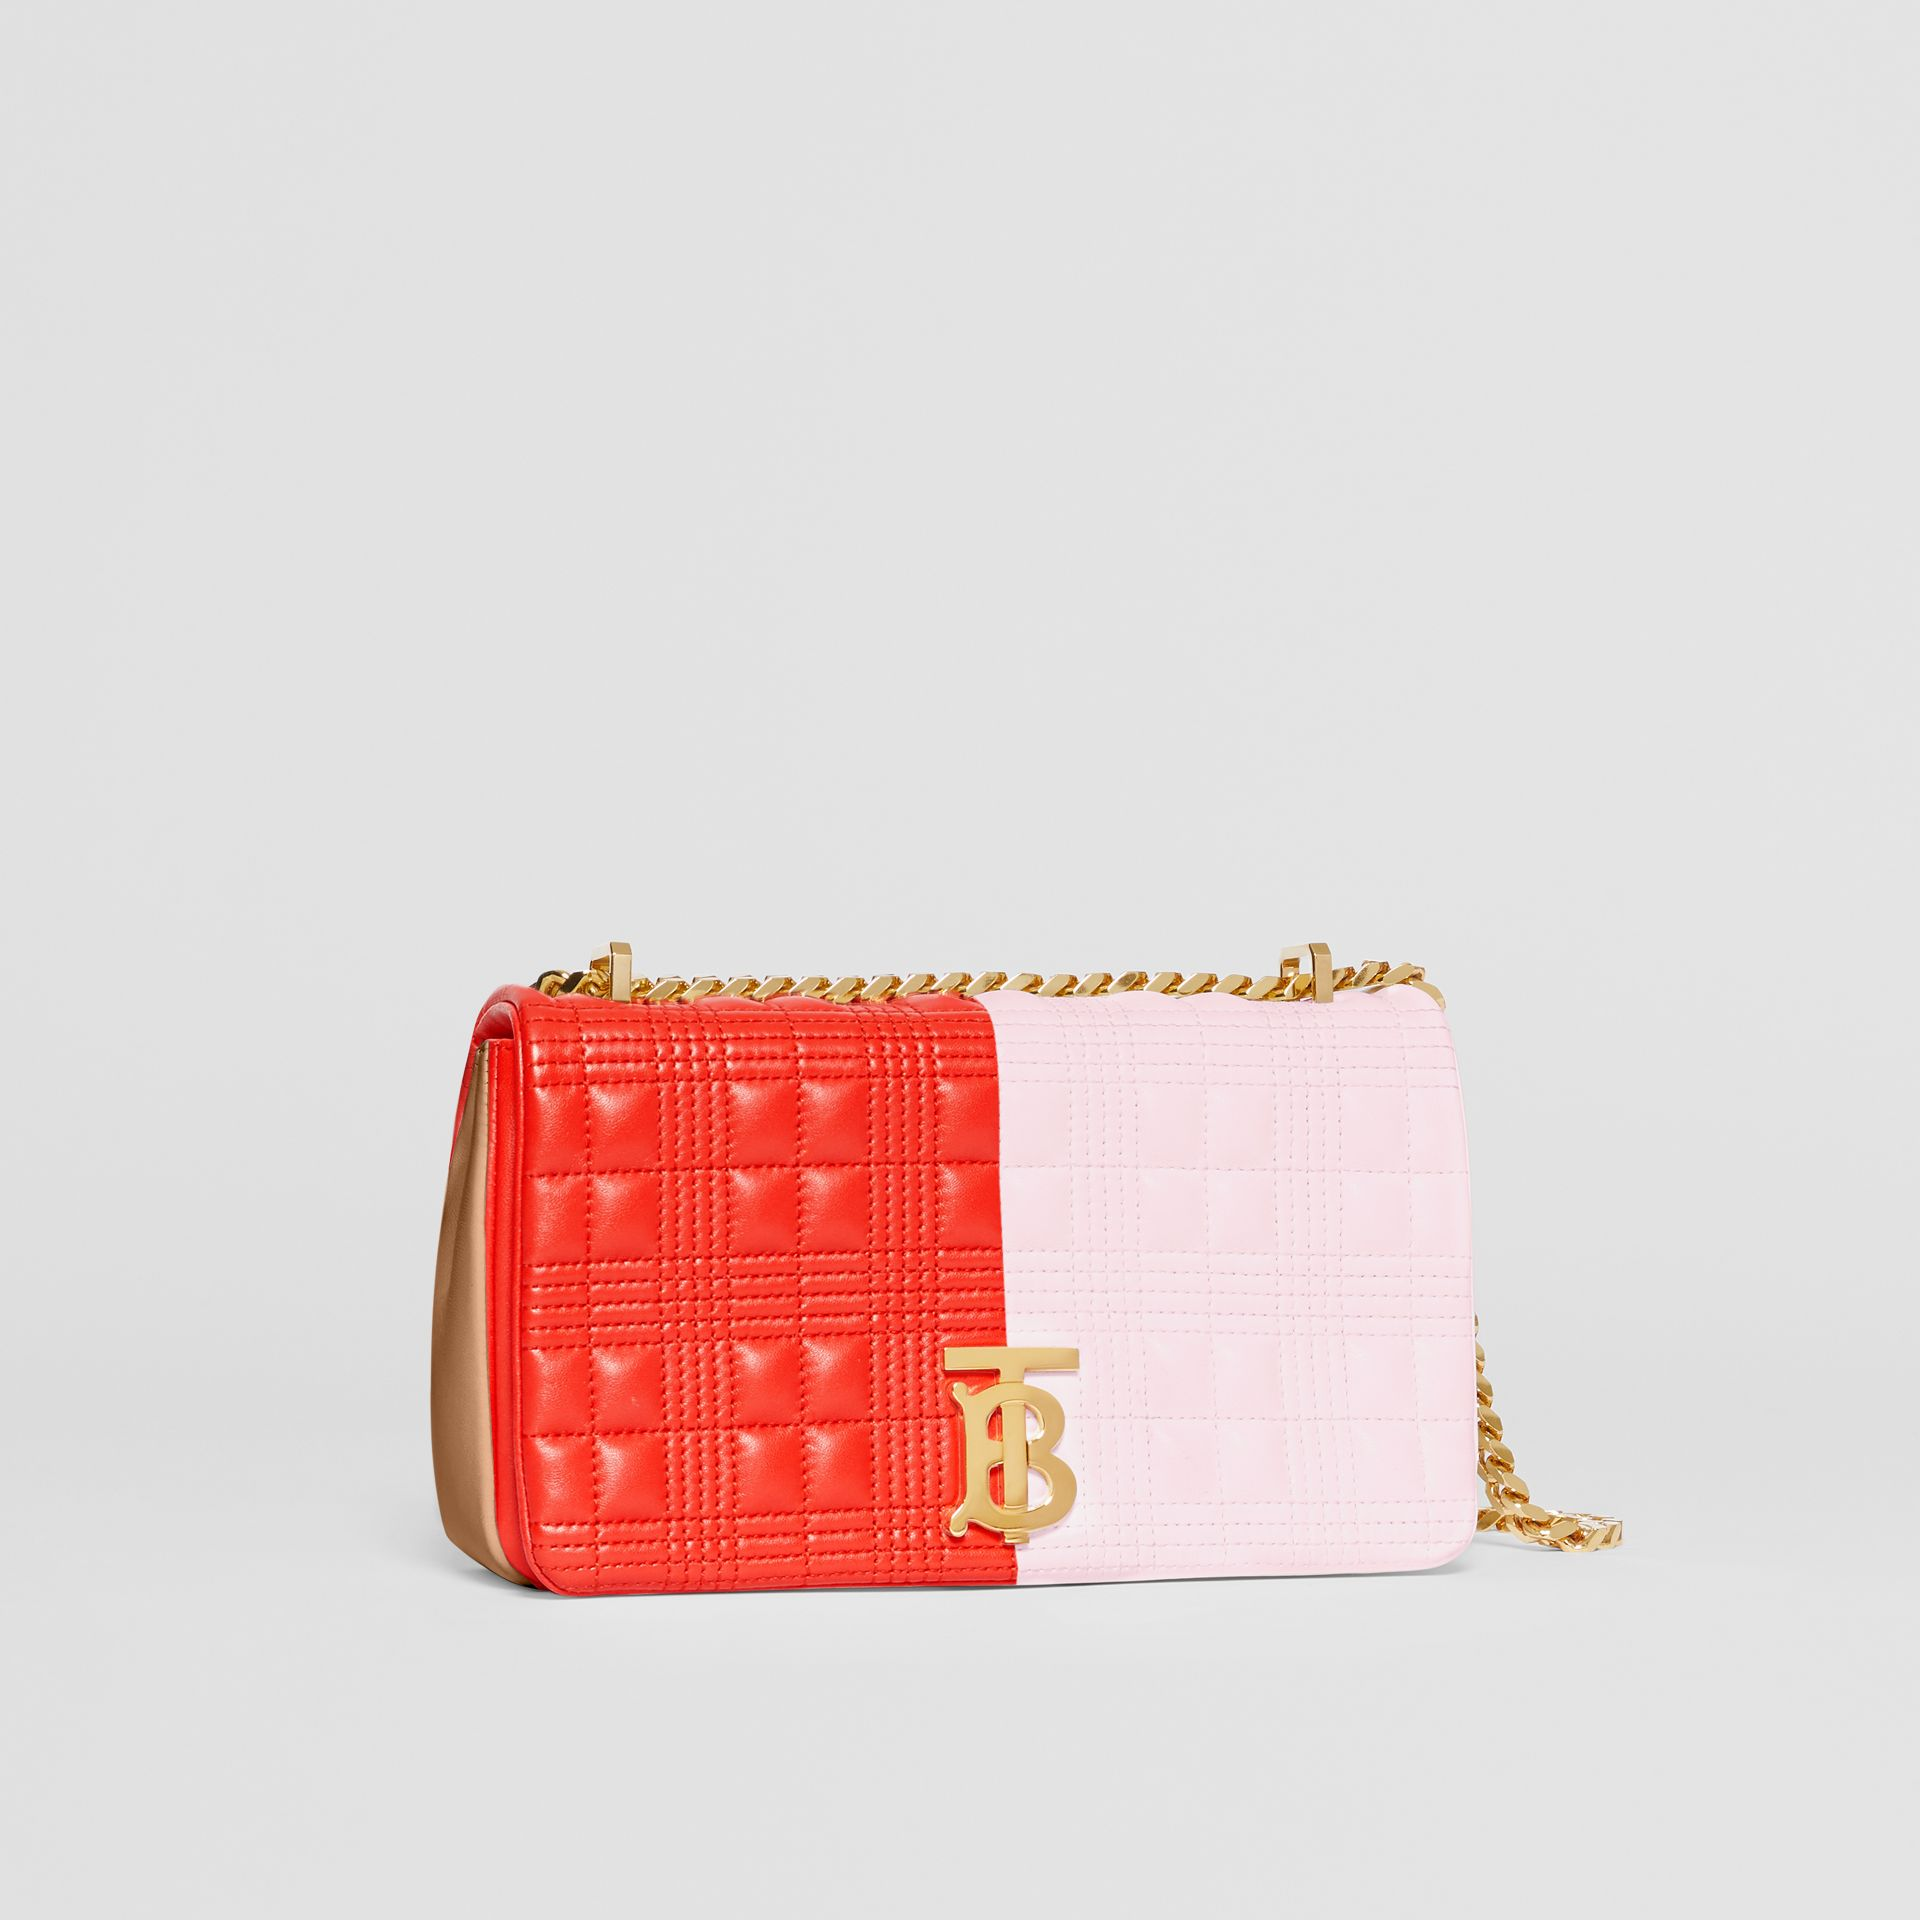 Small Quilted Tri-tone Lambskin Lola Bag in Red/pink/camel - Women | Burberry - gallery image 6